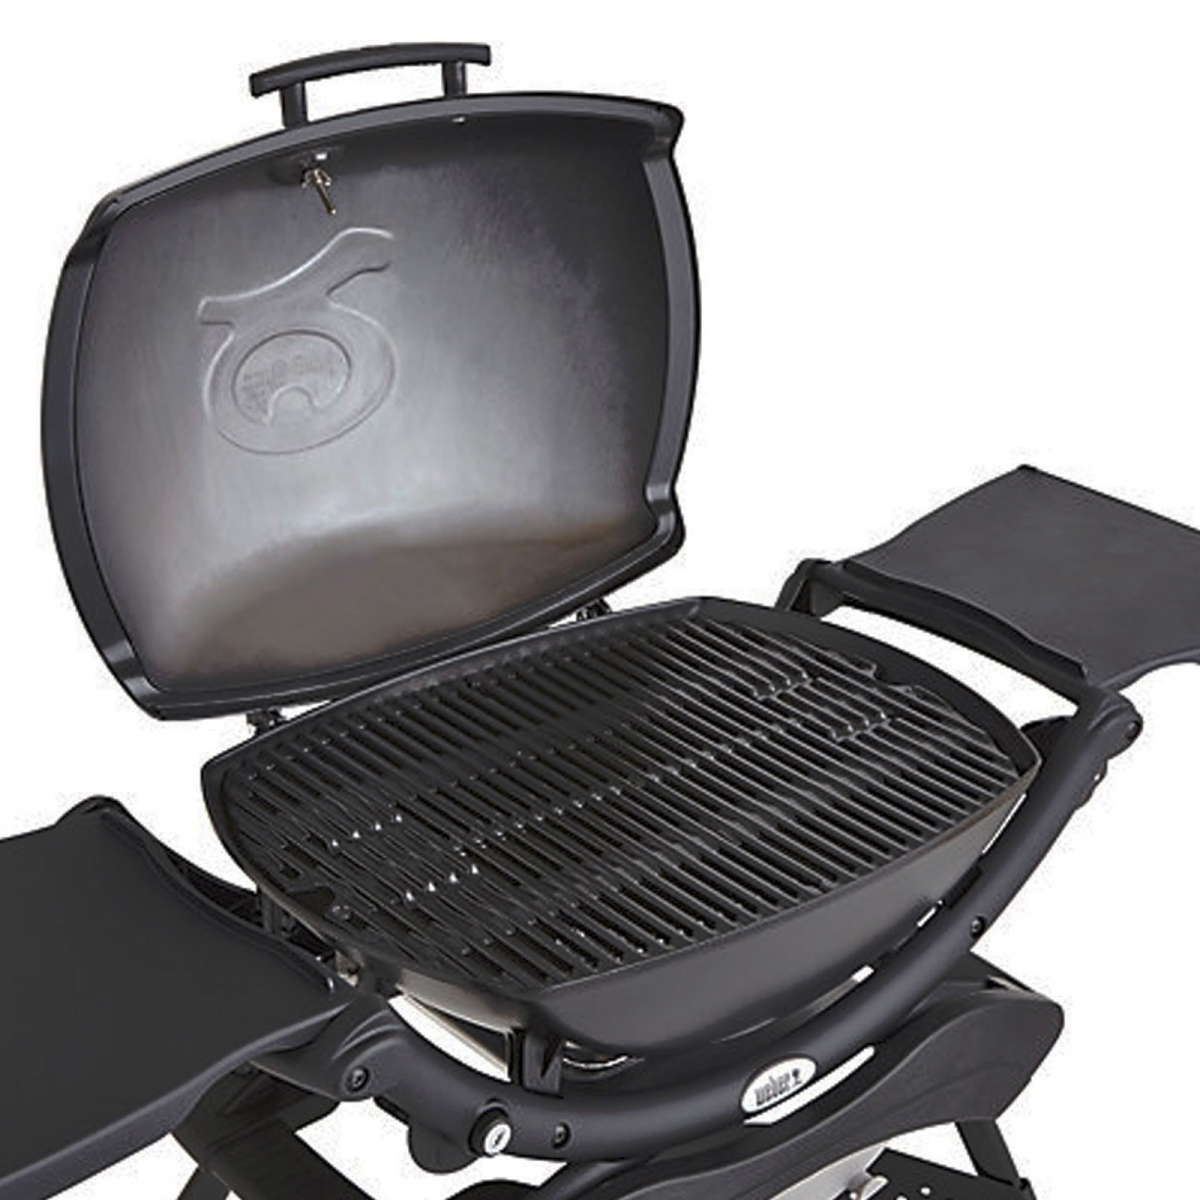 weber q 2200 gas grill weber barbecue a gas il mondo del. Black Bedroom Furniture Sets. Home Design Ideas